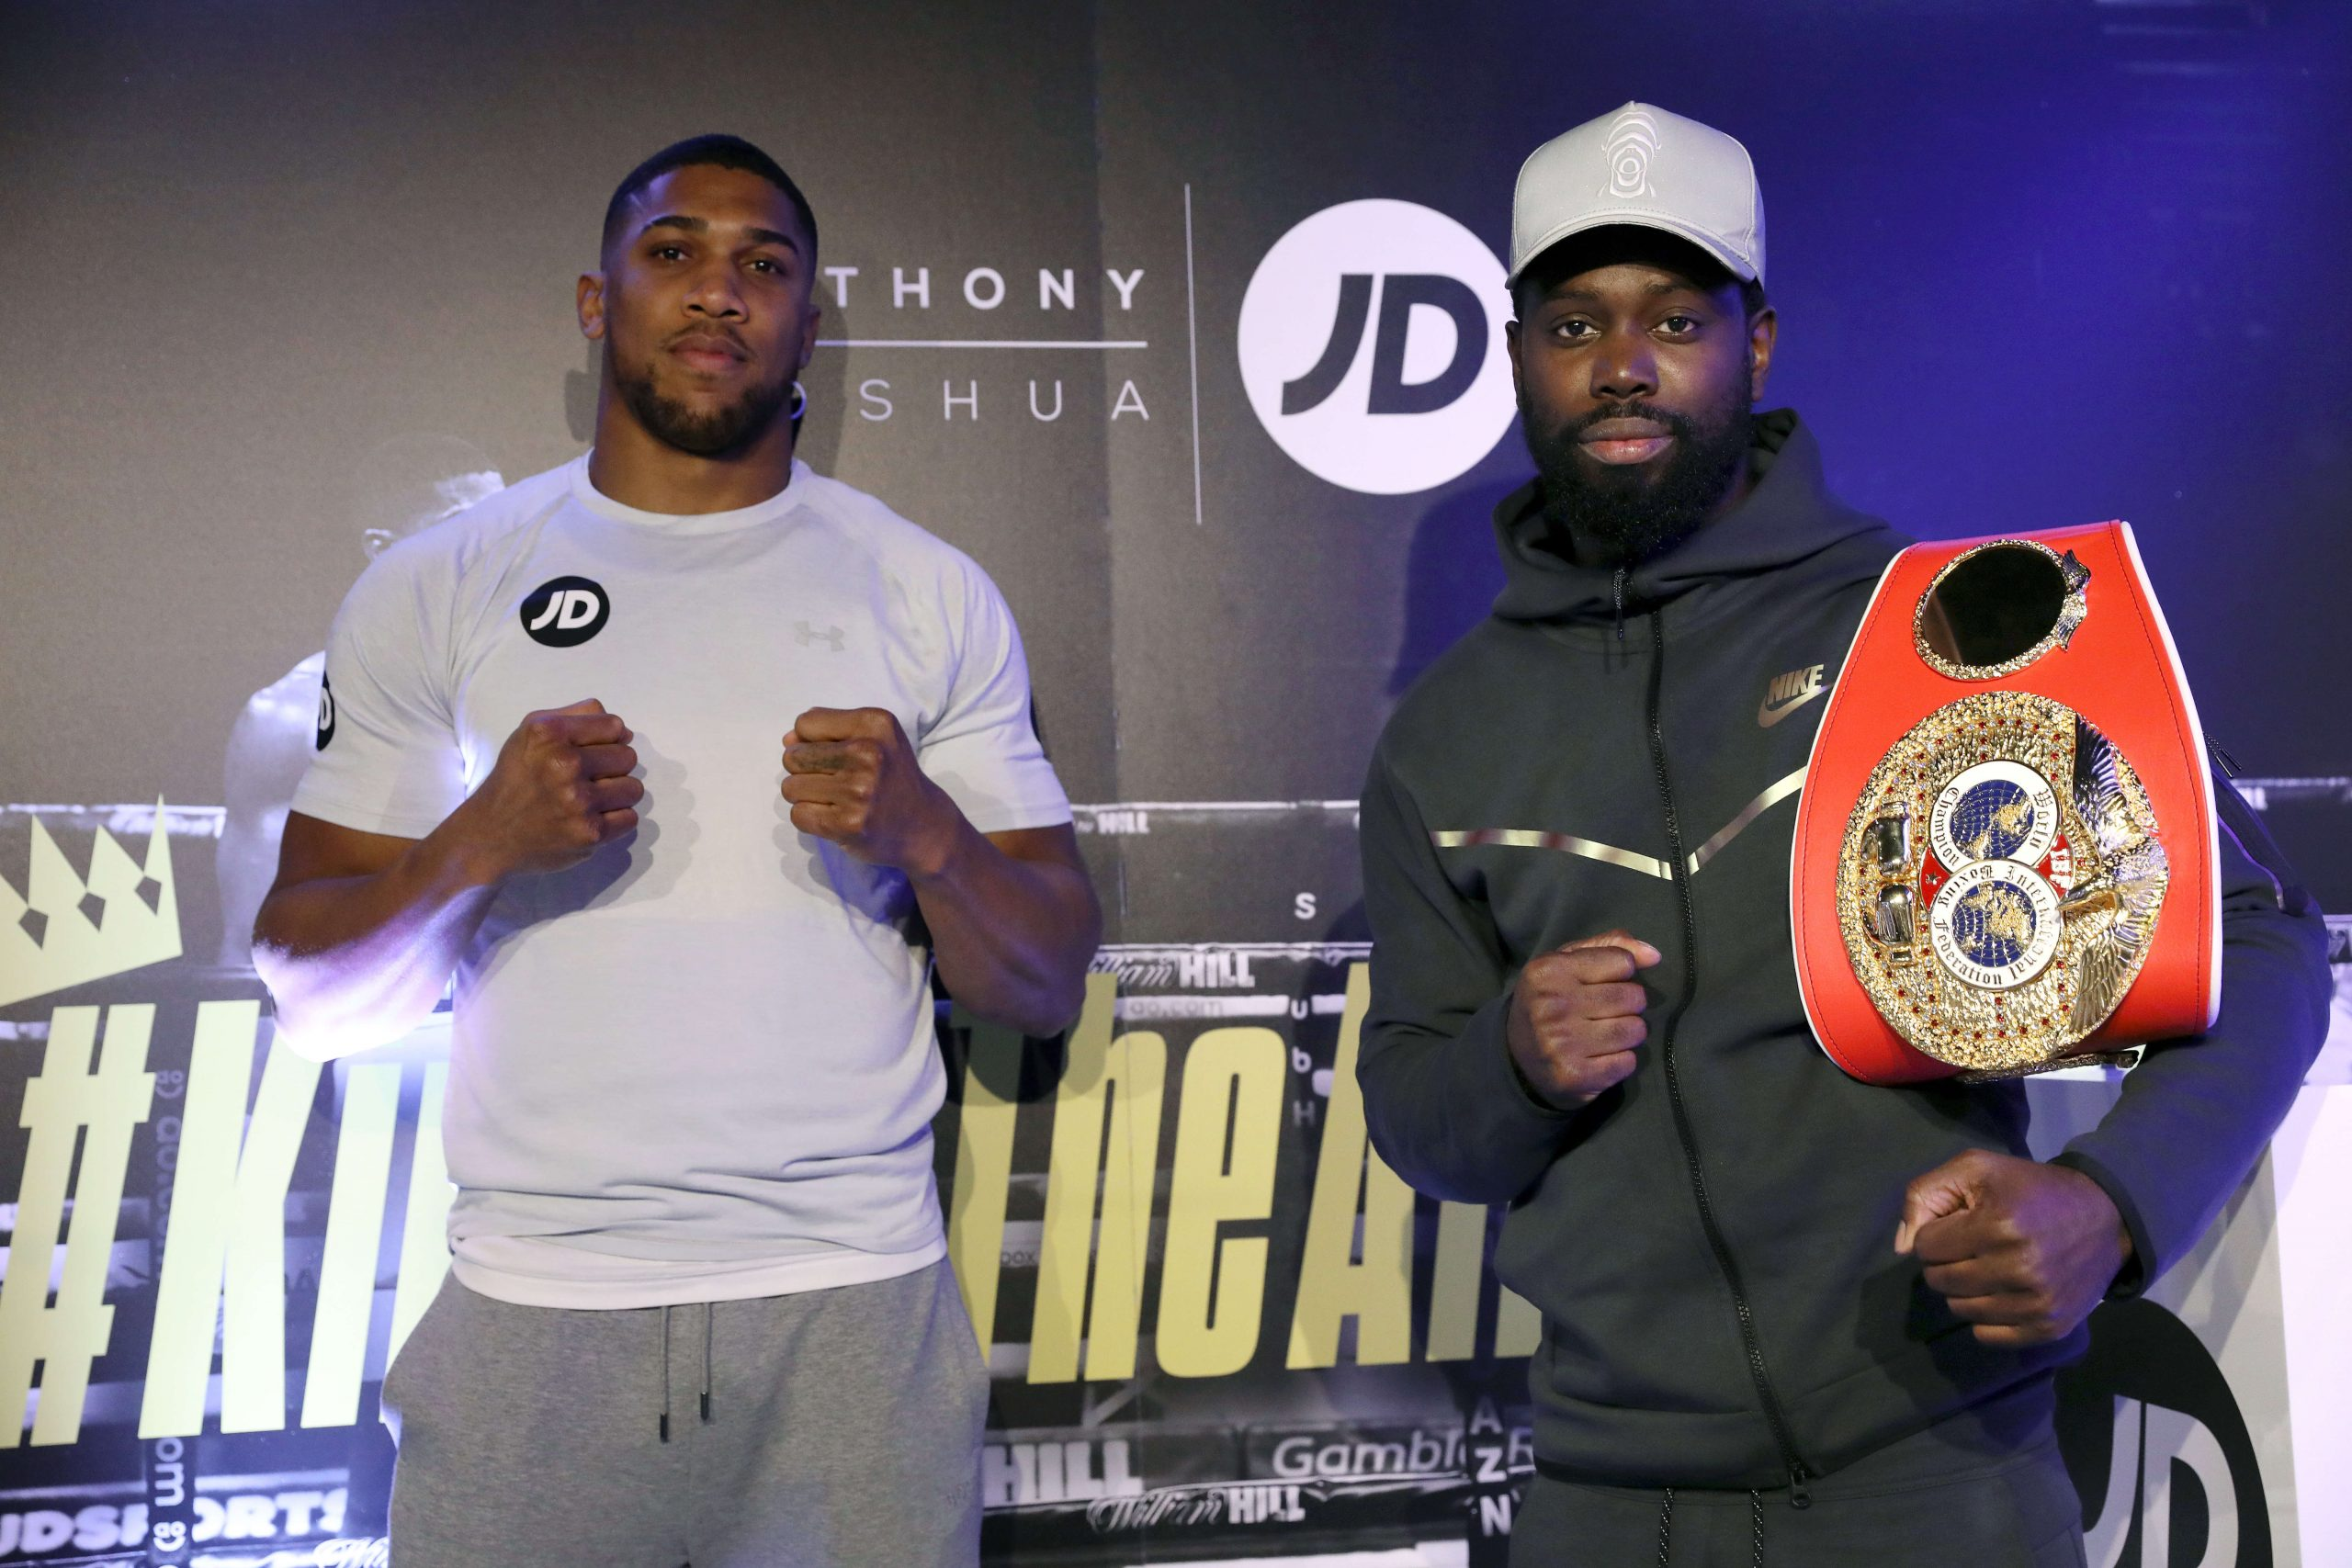 LONDON, ENGLAND - FEBRUARY 28: JD's Anthony Joshua hosts his #KingOfTheAirwaves radio show live on TikTok with a host of special guests including Munya Chawawa, Headie One, Ghetts, Potter Payper and Jeremy Lynch at The Printworks on February 28, 2021 in London, England. (Photo by Tristan Fewings/Getty Images for JD)